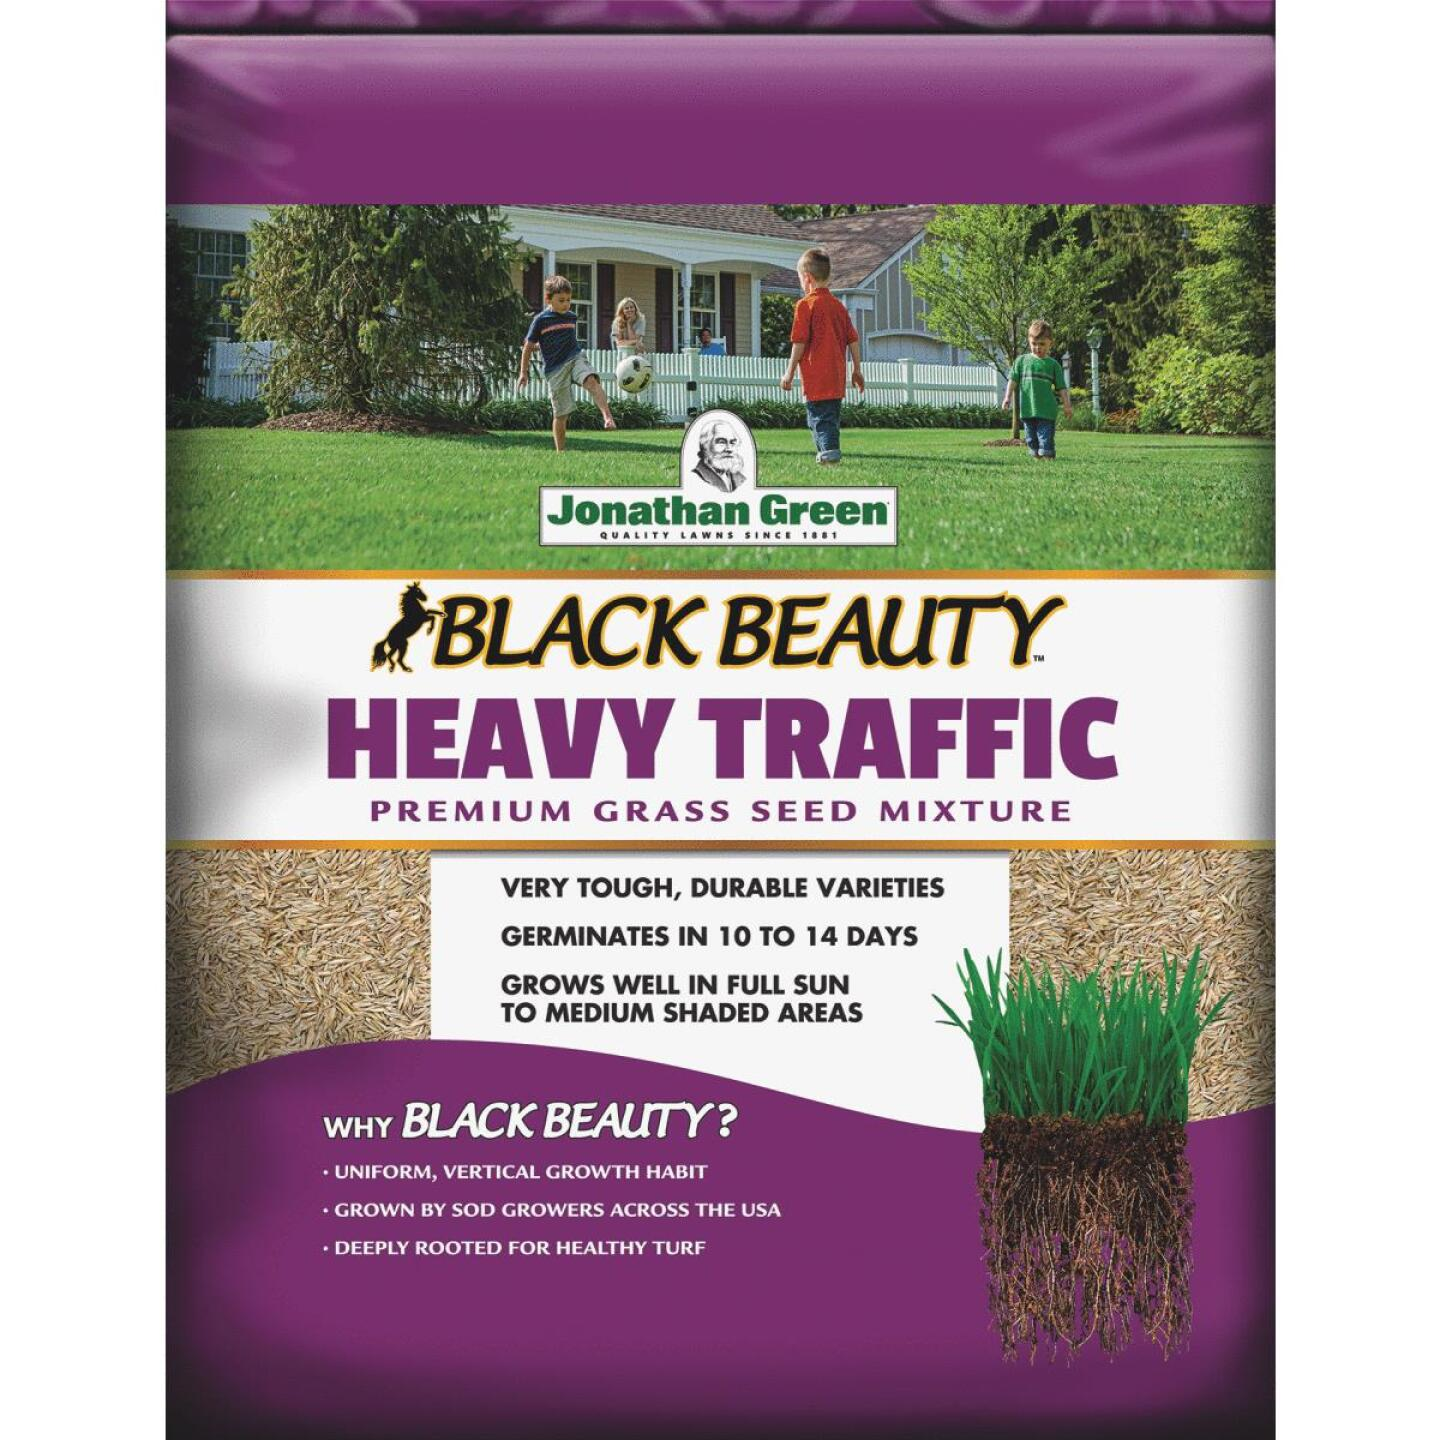 Jonathan Green Black Beauty 3 Lb. 600 Sq. Ft. Coverage High Traffic Grass Seed Image 1